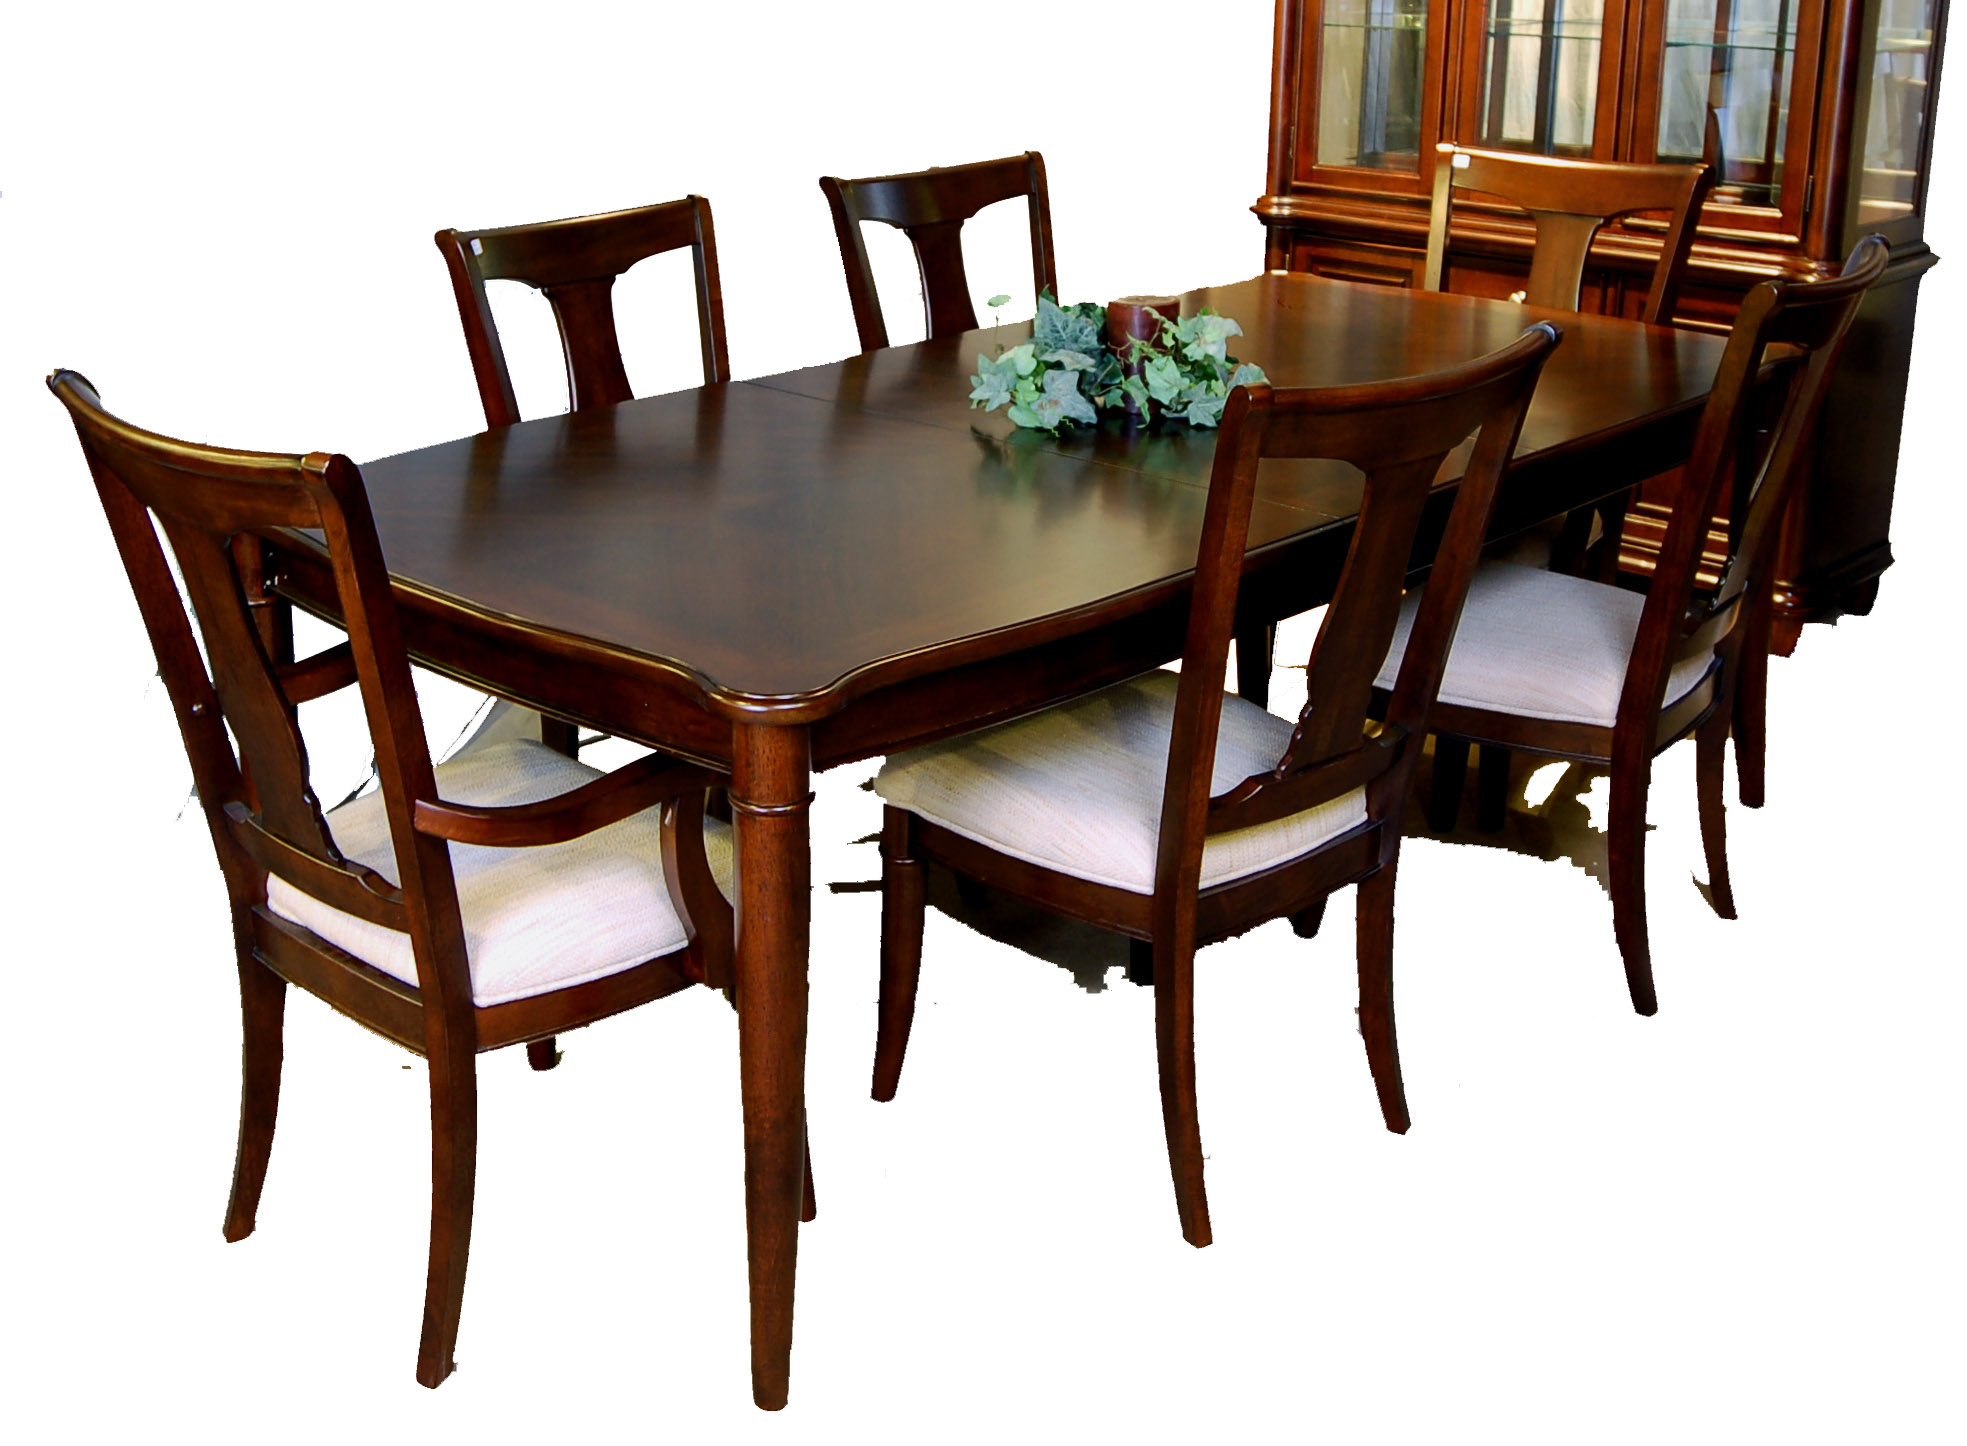 7 piece dining room table and chair set ebay for Dining room table and chair sets